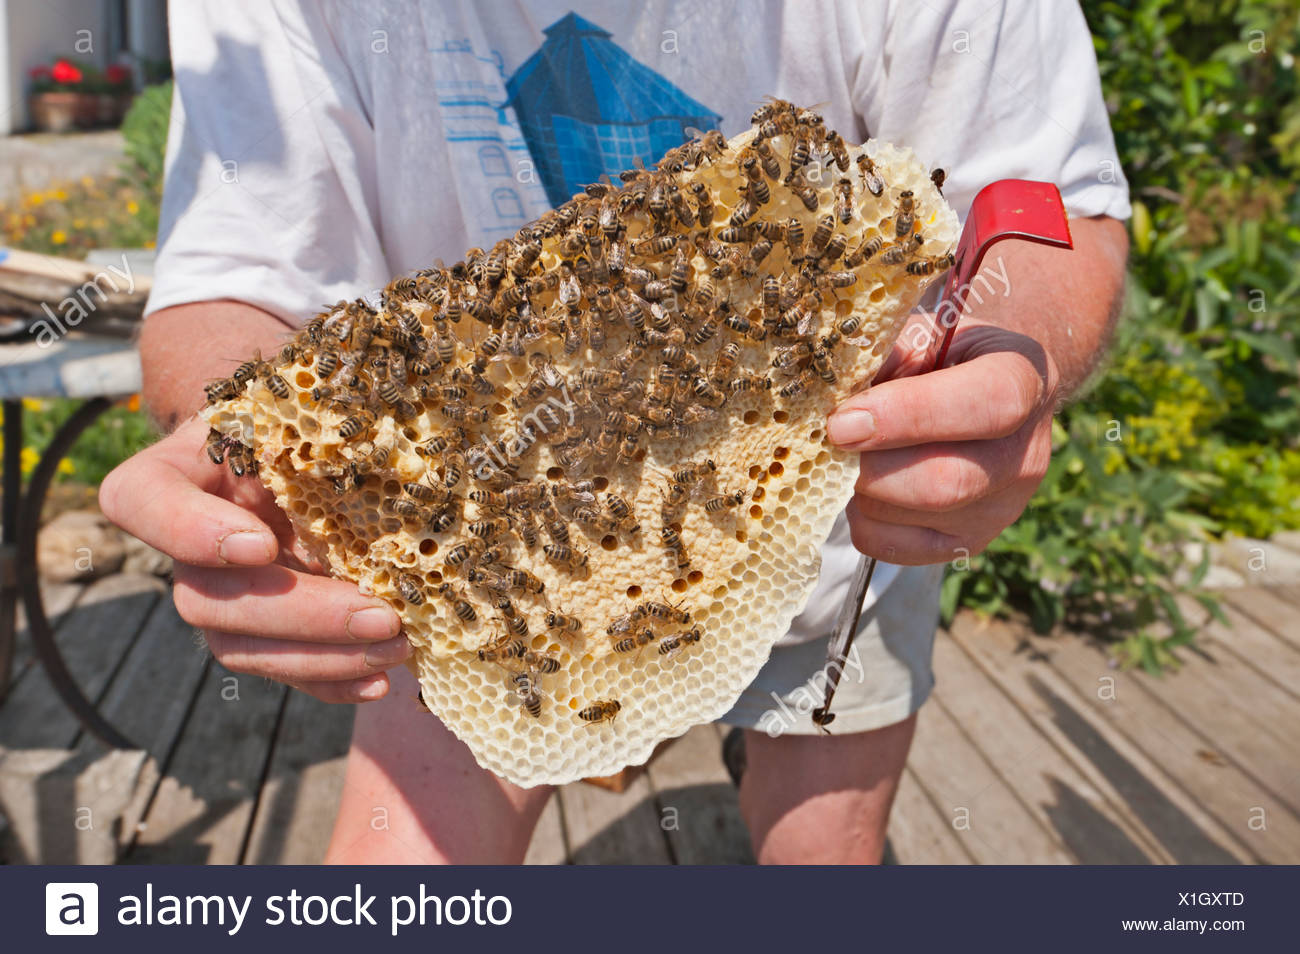 Germany, Beekeeper holding honeycomb of wild bees - Stock Image